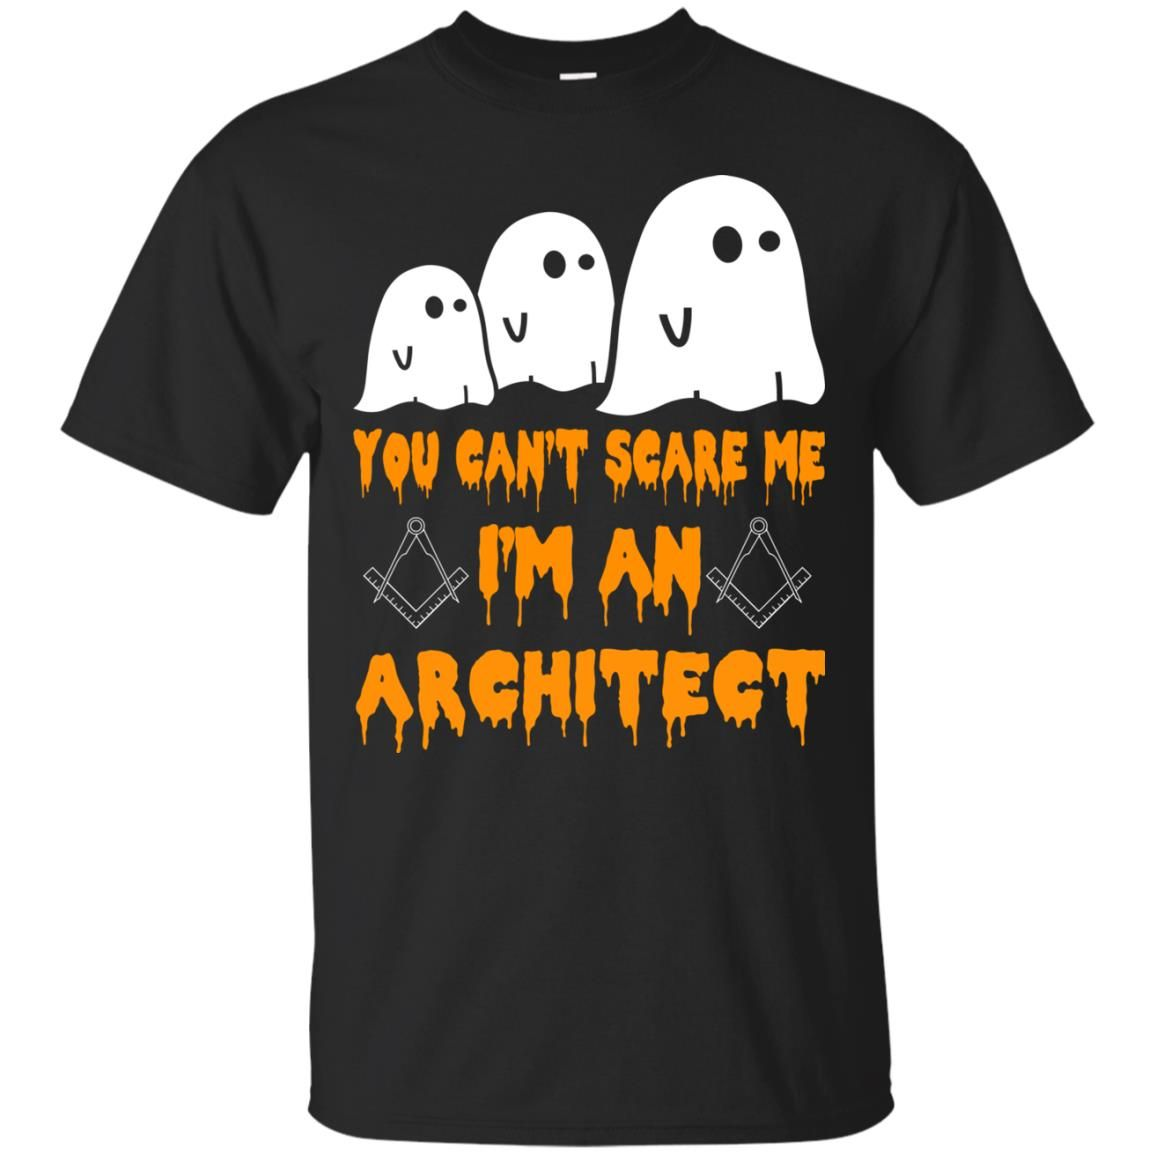 image 514 - You can't scare me I'm an Architect shirt, hoodie, tank